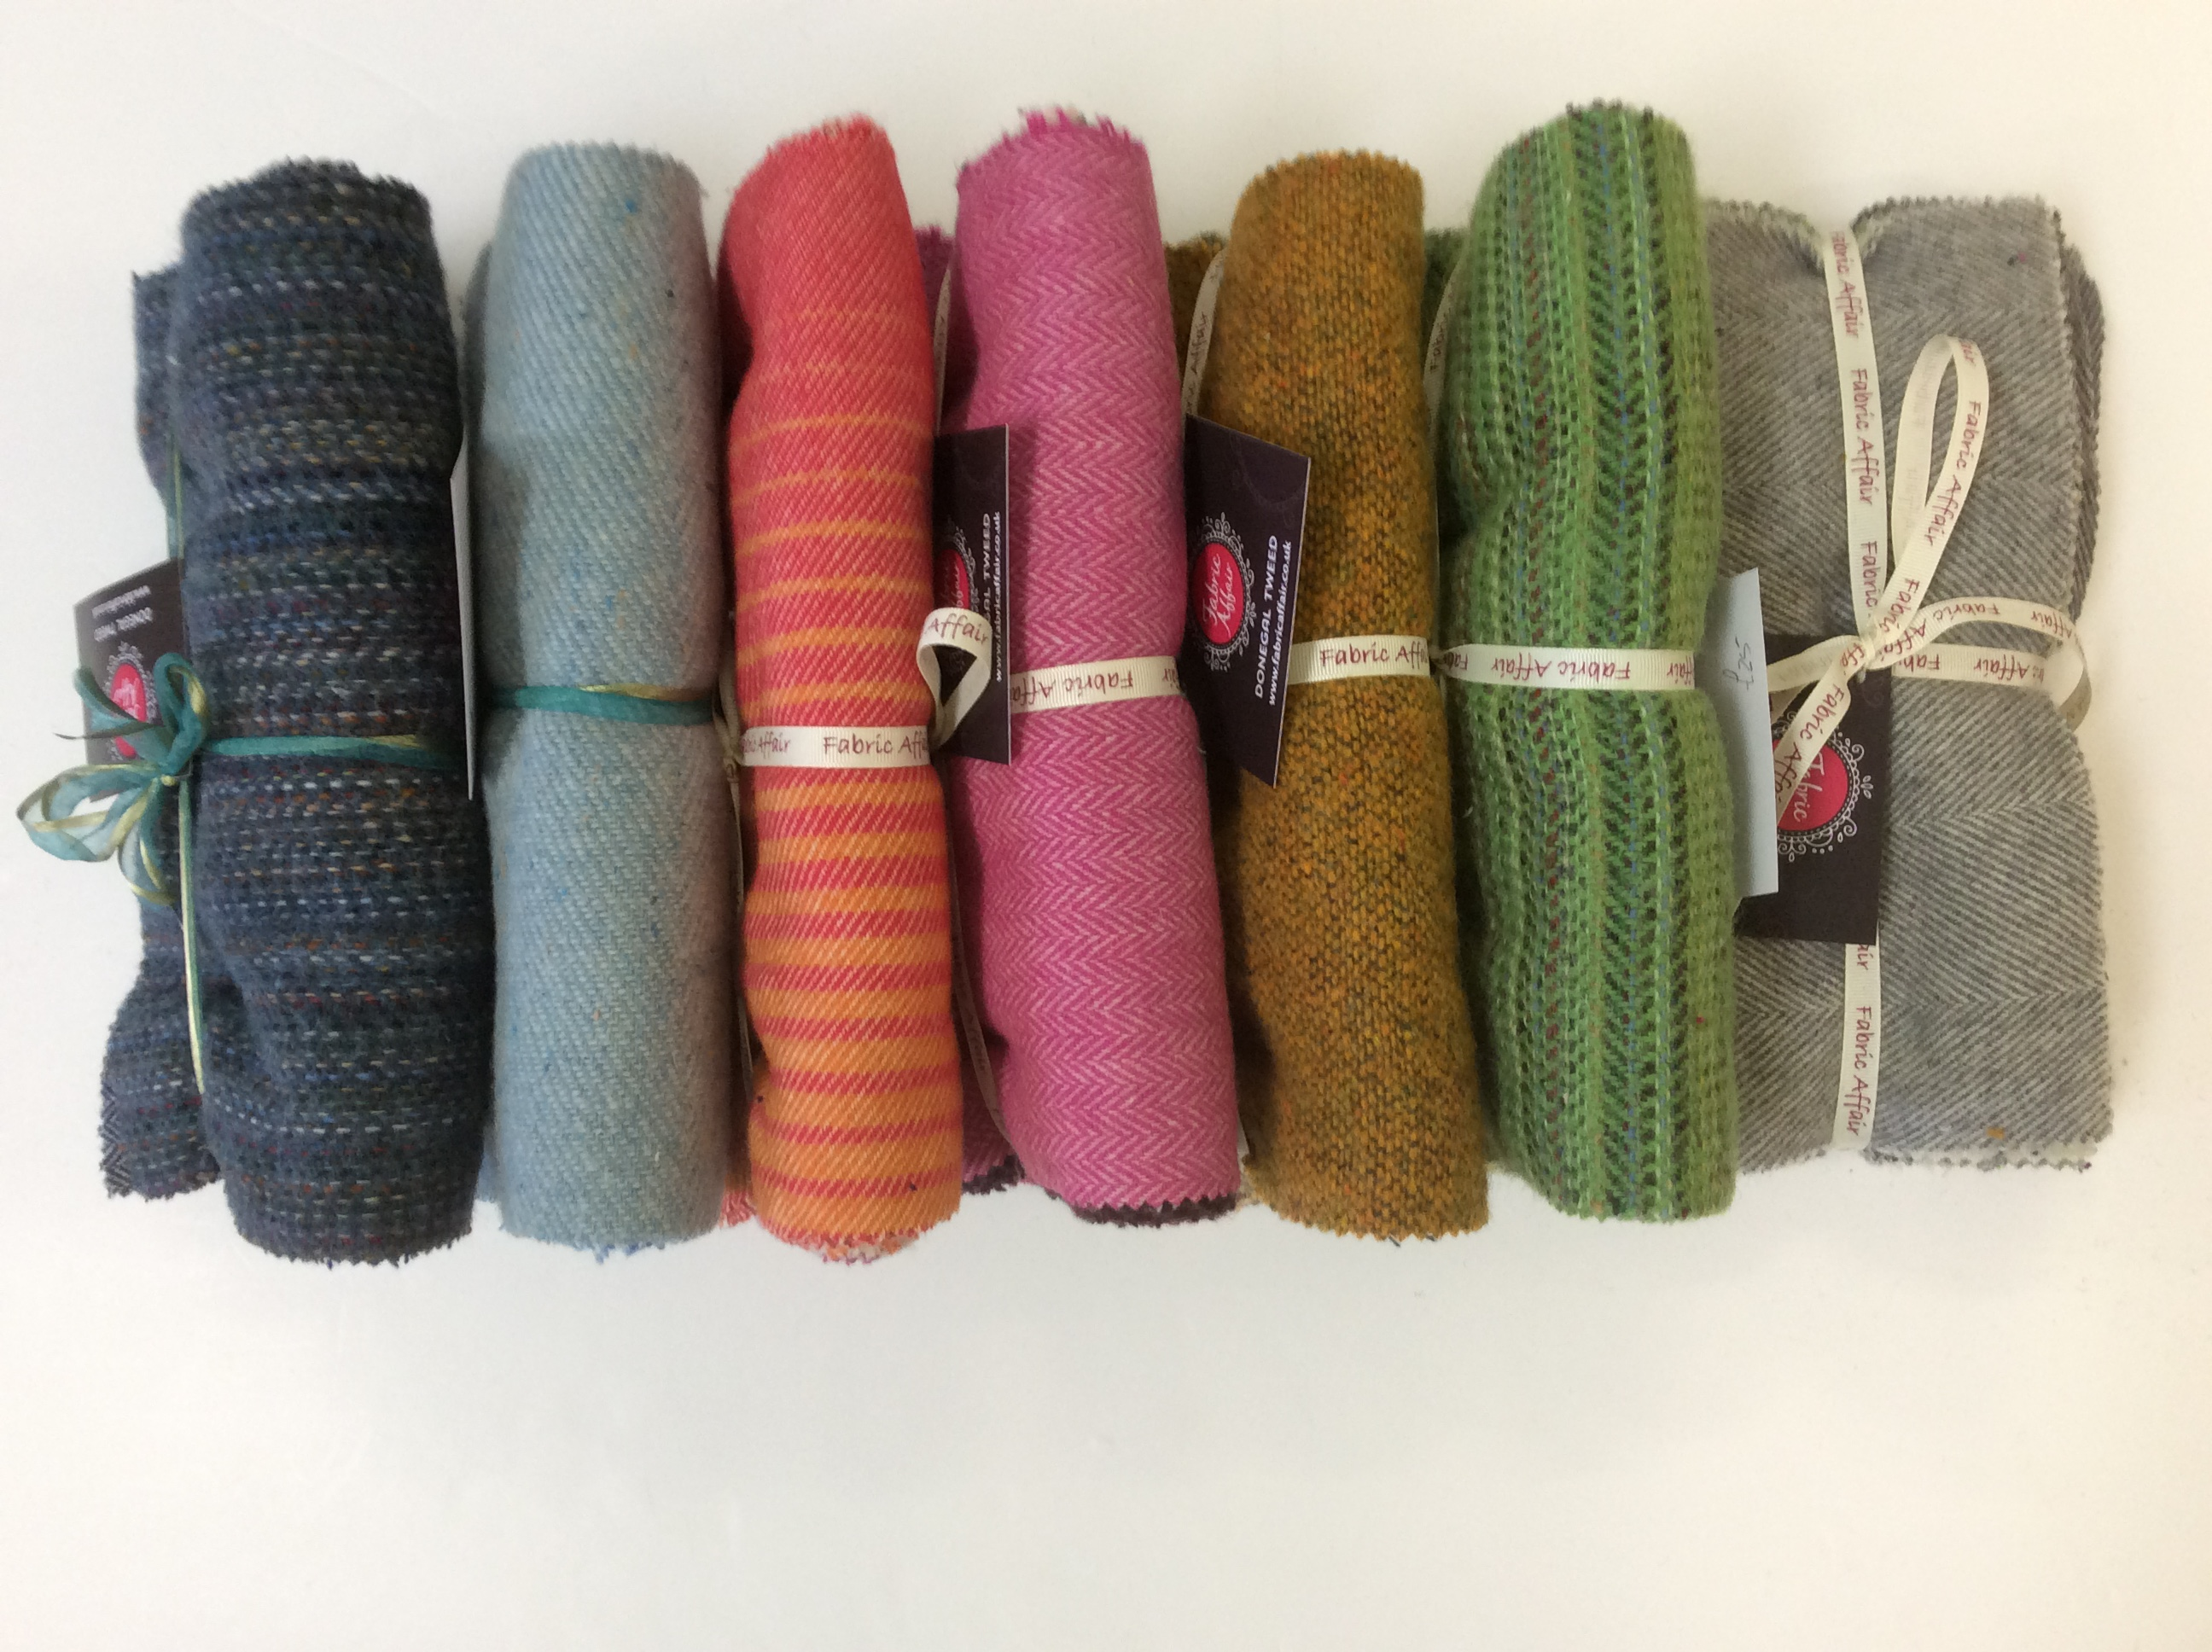 "Fabric Affair: "" Donegal Tweed Rolls""."